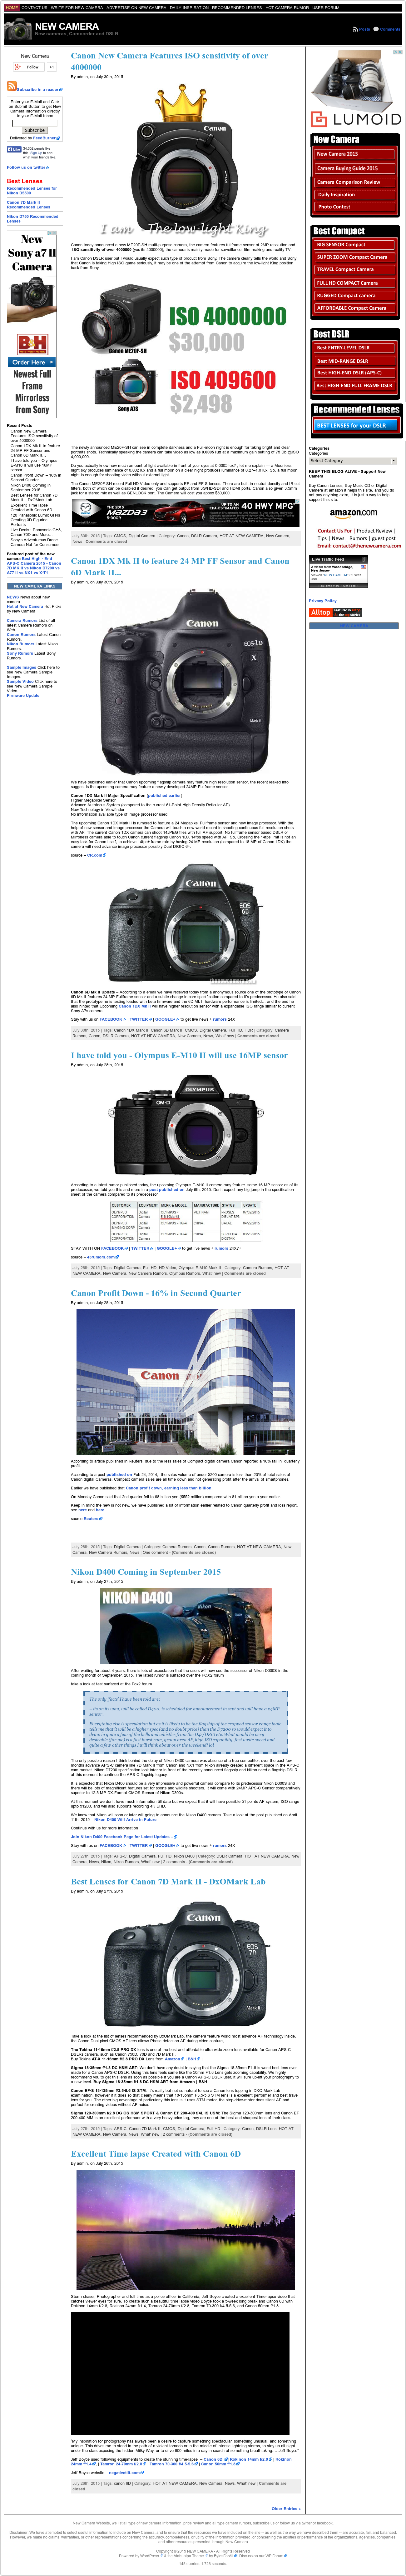 New Camera Competitors, Revenue and Employees - Owler